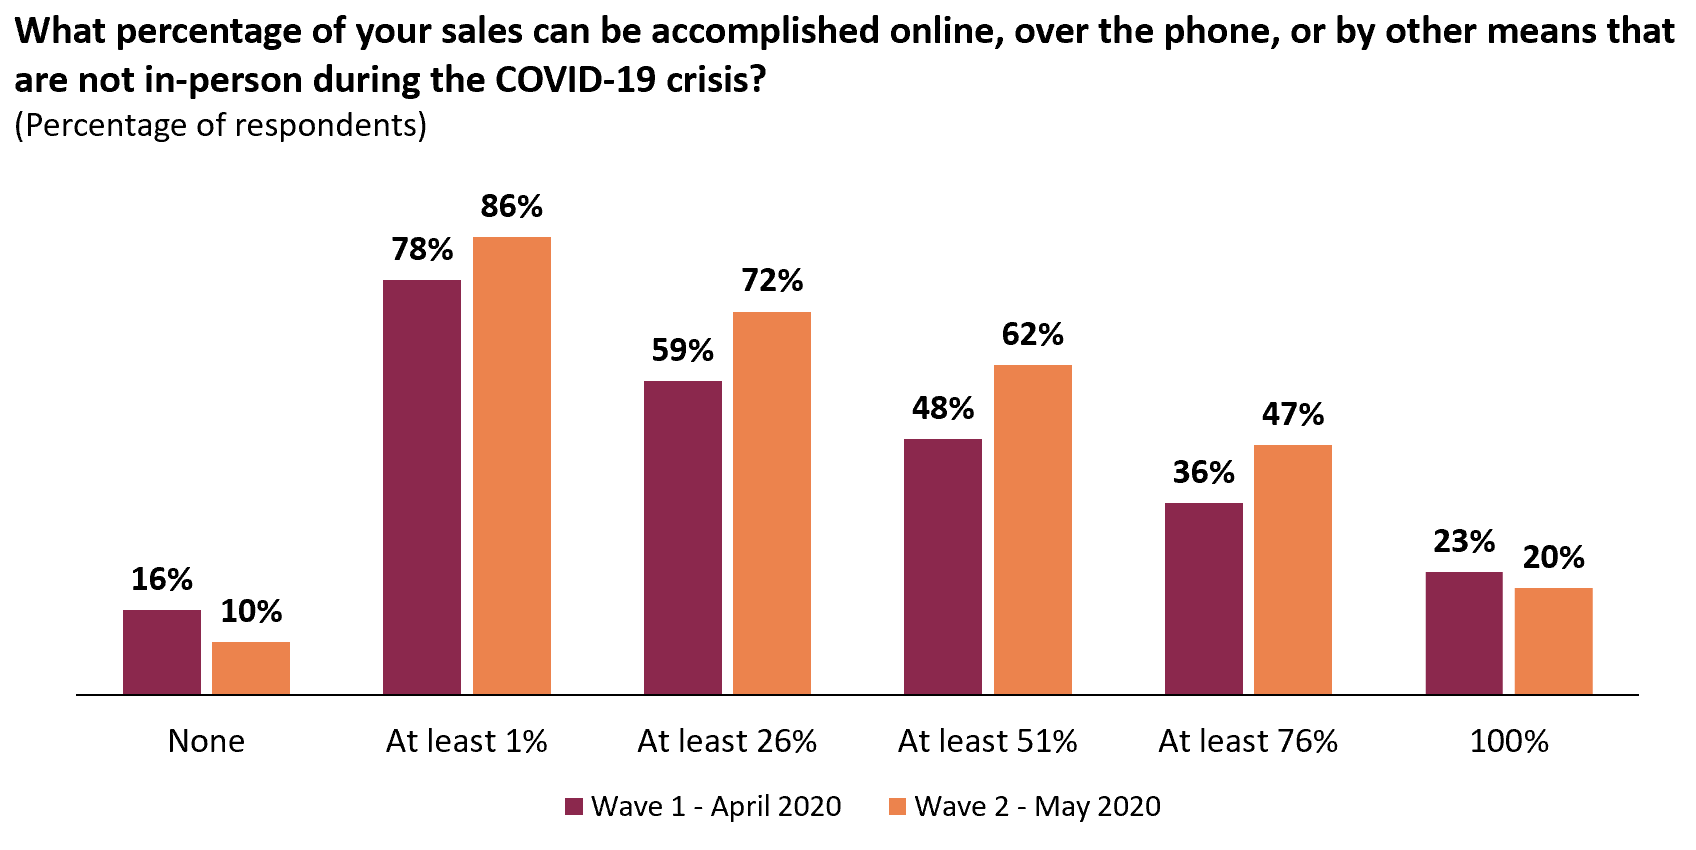 Companies have adapted to online capabilities, with most able to complete sales remotely